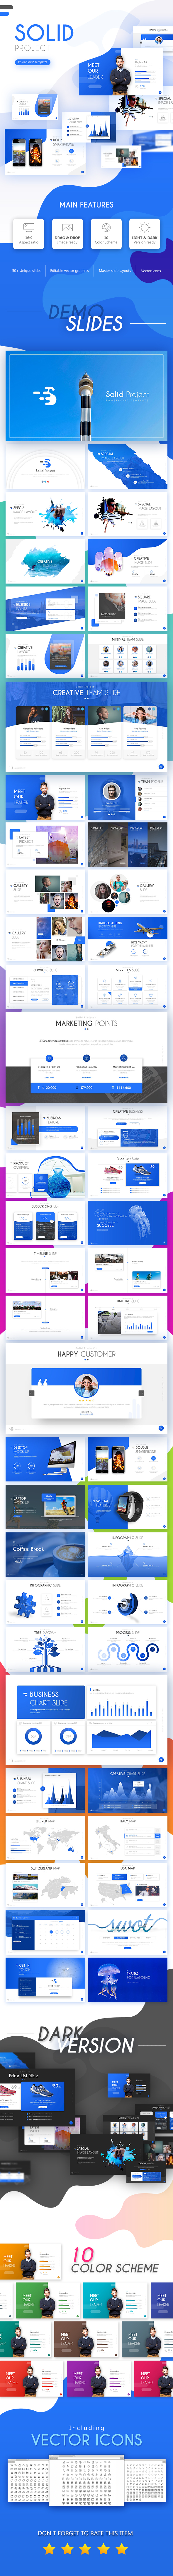 Solid Project PowerPoint Template - Business PowerPoint Templates